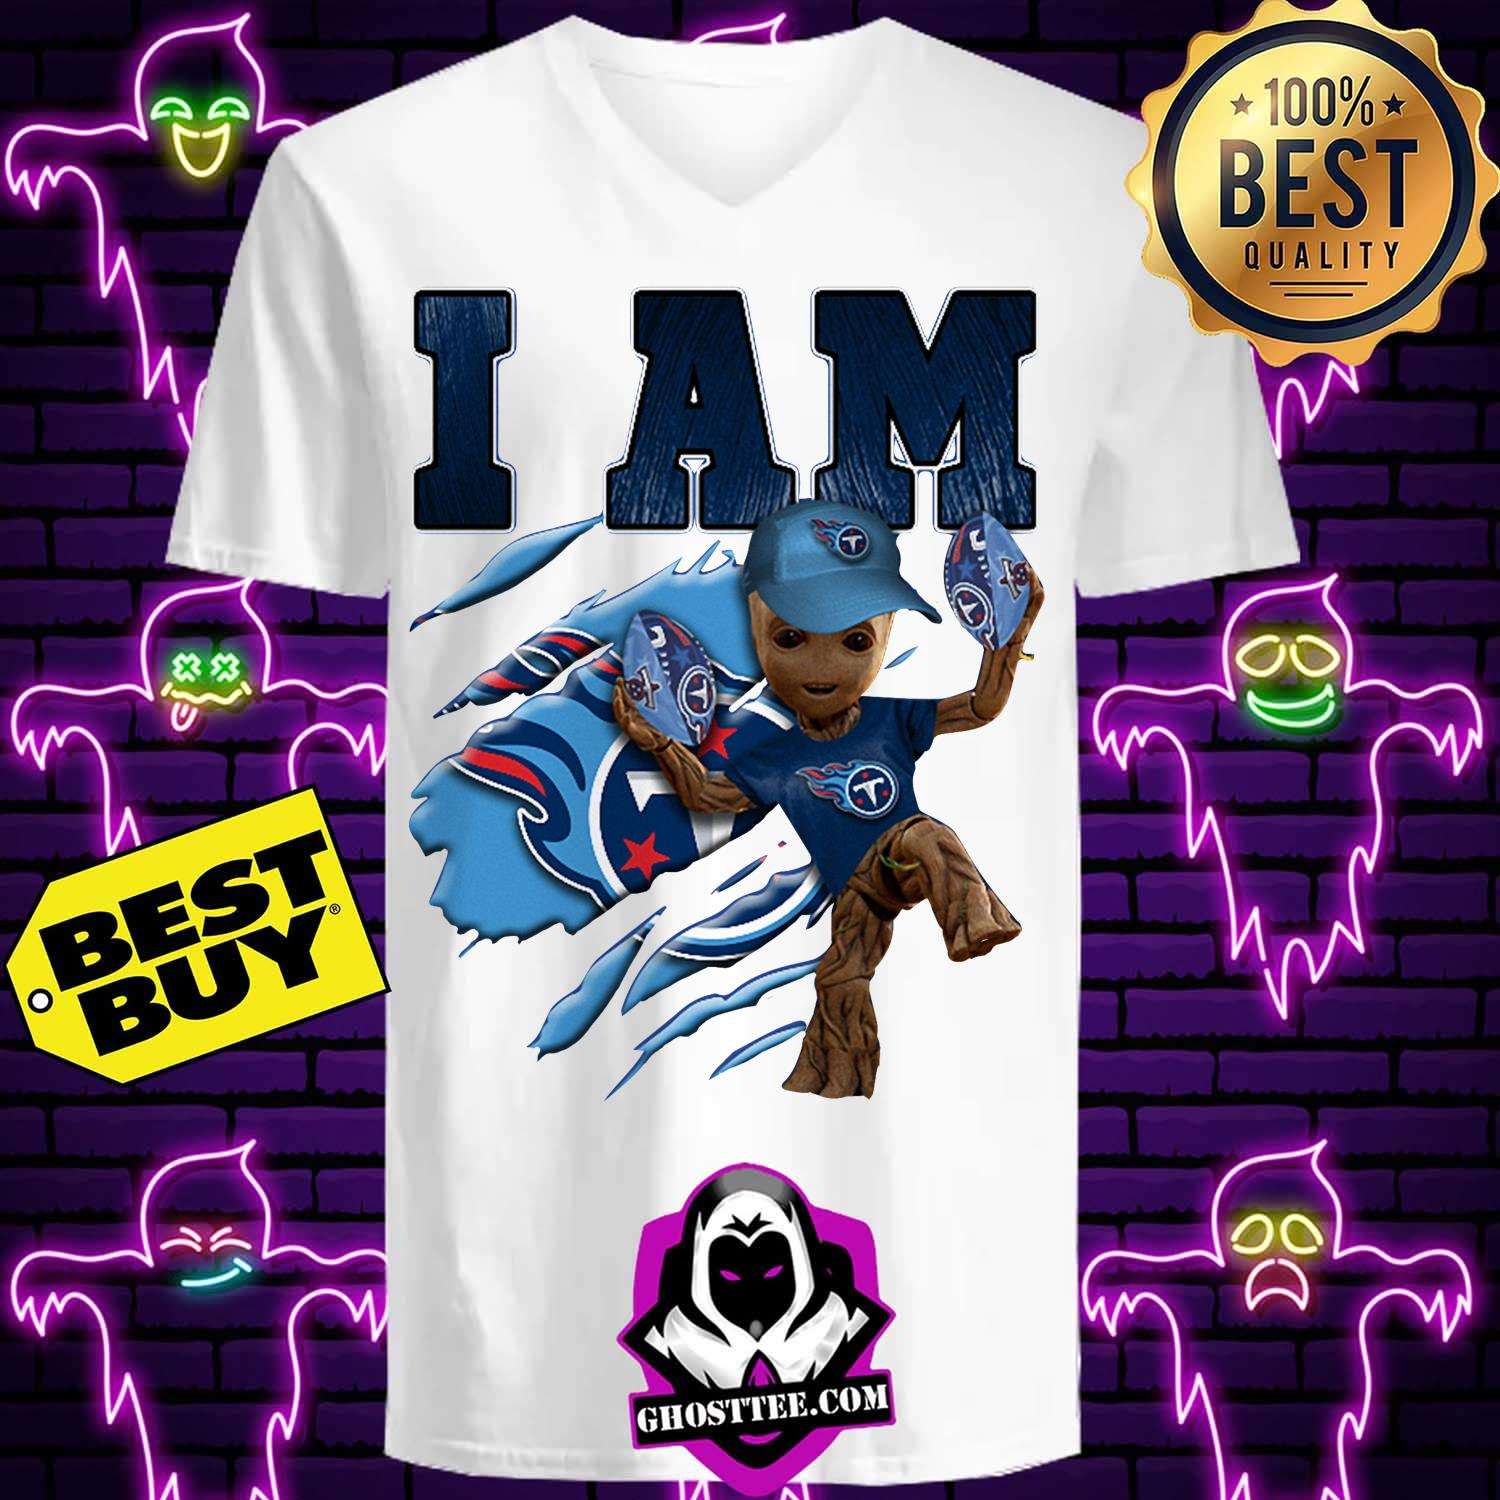 tennessee titans i am groot ladies tee - Tennessee Titans I am Groot shirt